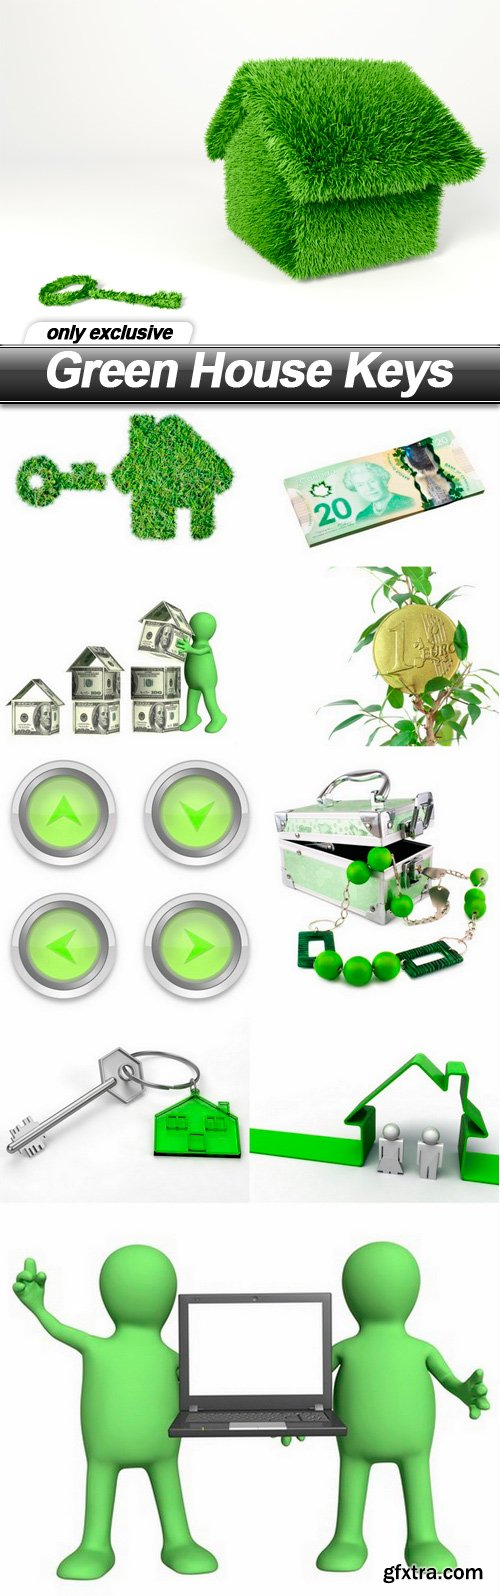 Green House Keys - 10 UHQ JPEG